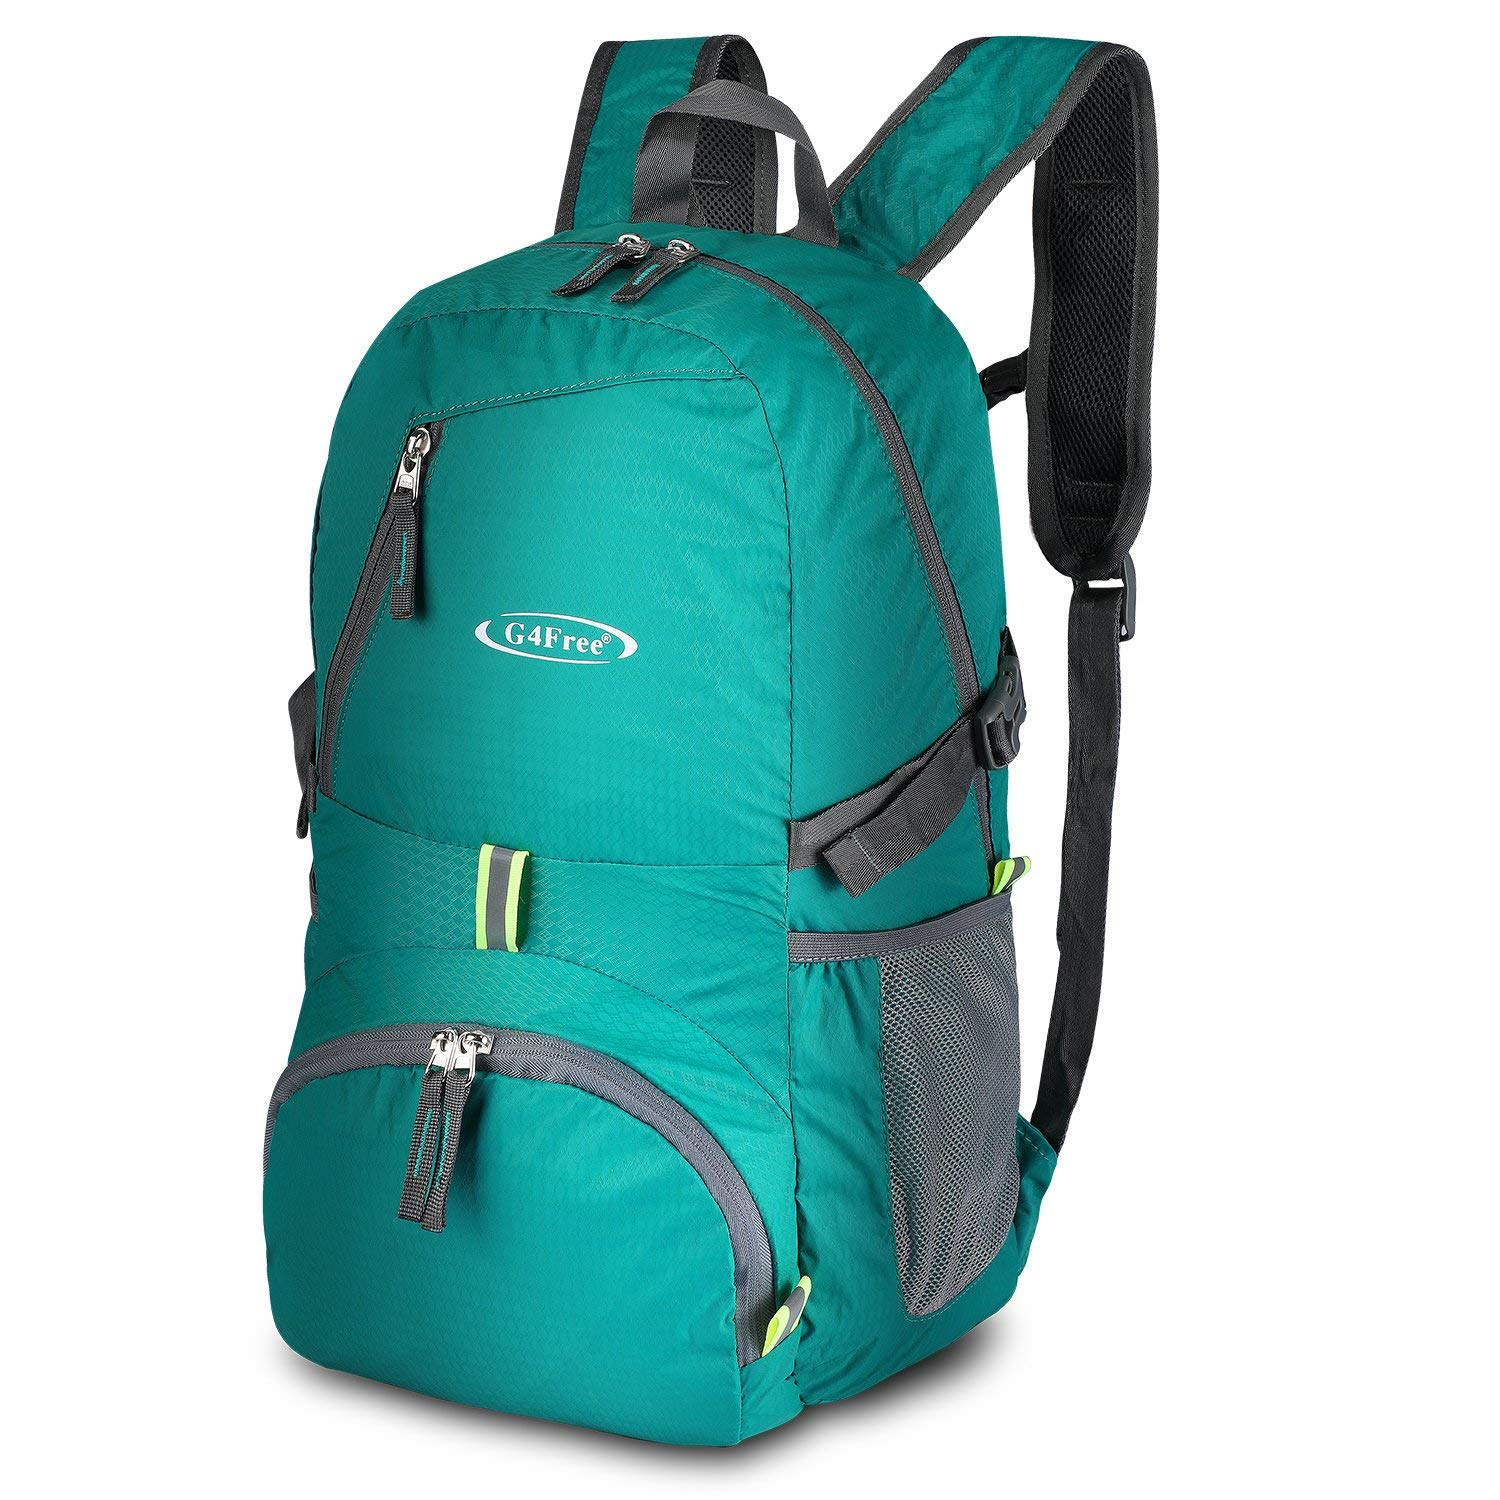 Foldable Backpack Sports   Outdoors  Buy Online from Fishpond.co.nz ad70452f1b891